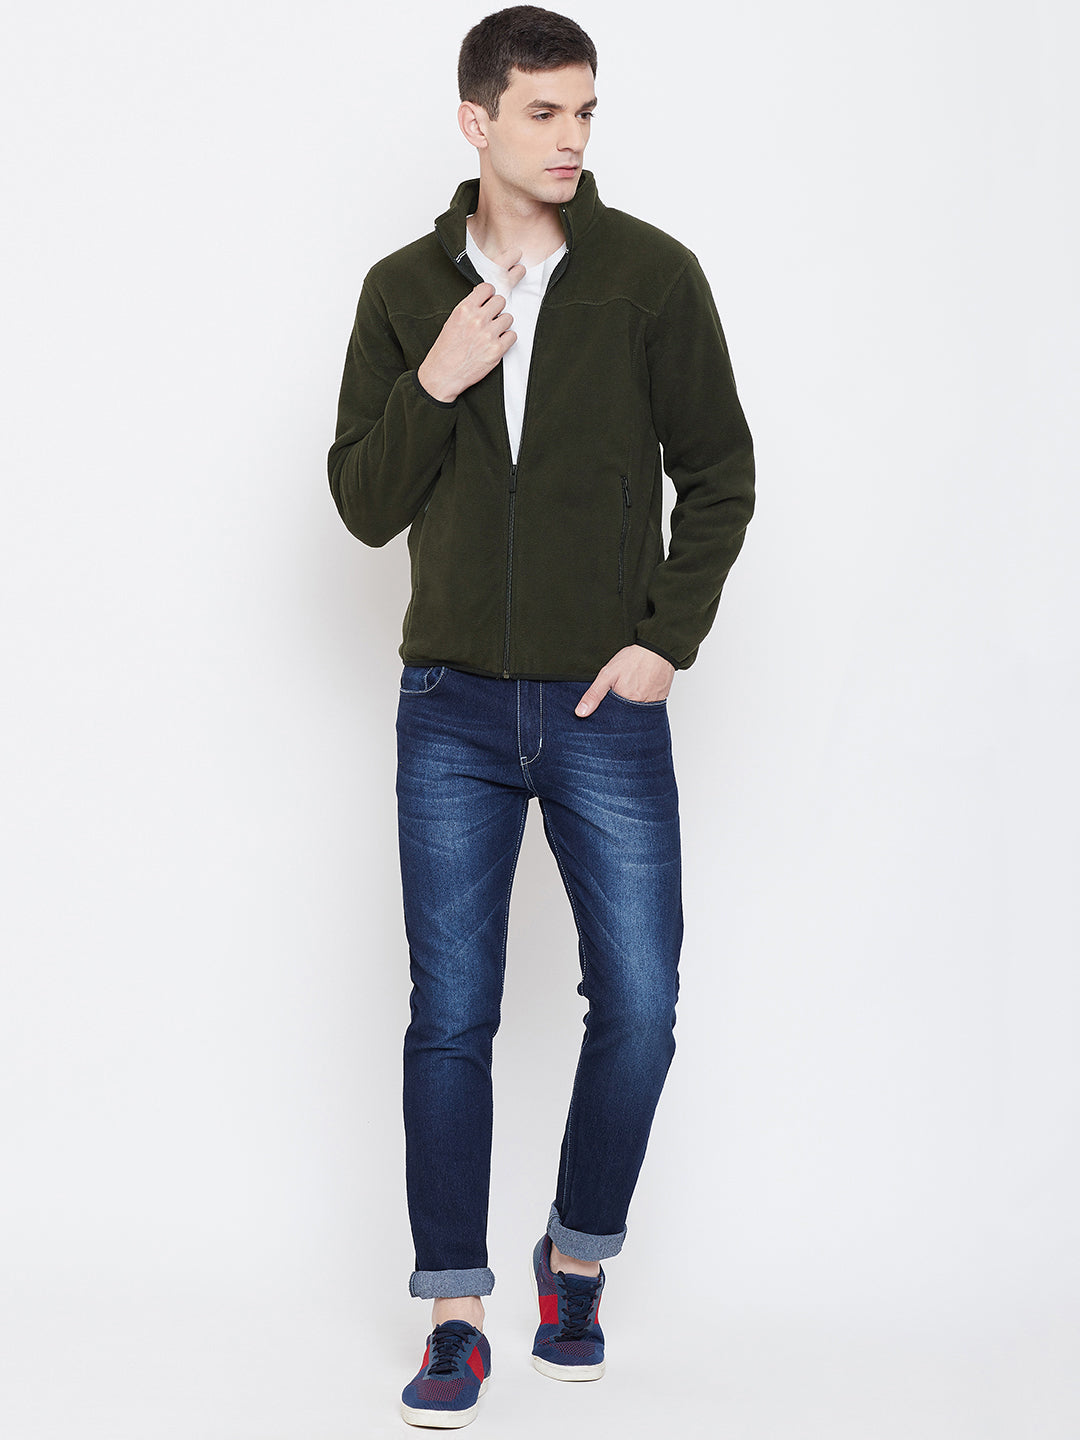 Octave apparels dark olive sweat shirt for men